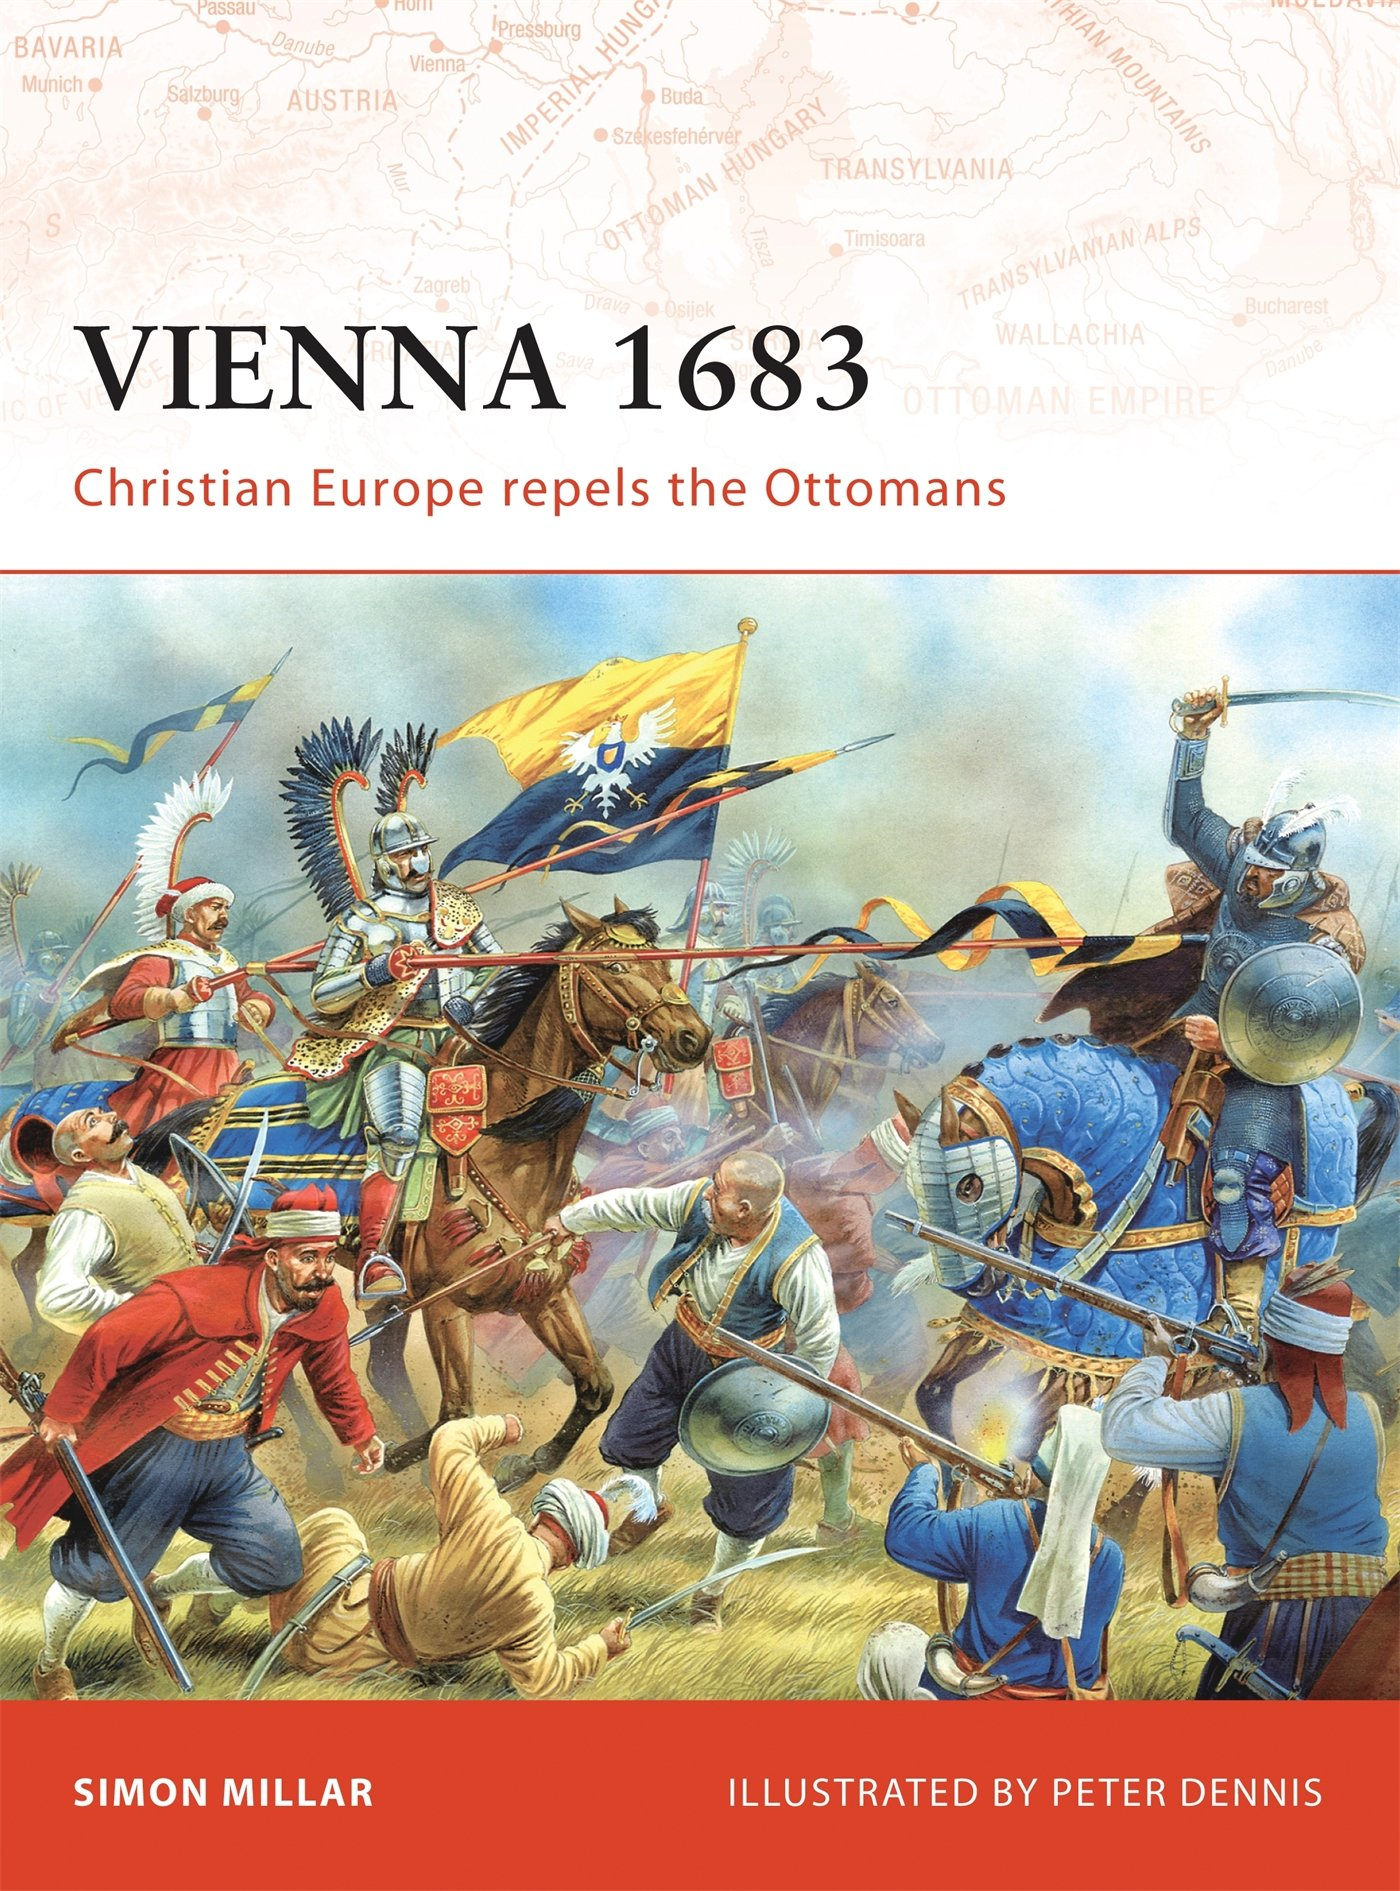 Amazon.com: Vienna 1683: Christian Europe Repels the Ottomans (Campaign)  (9781846032318): Simon Millar, Peter Dennis: Books